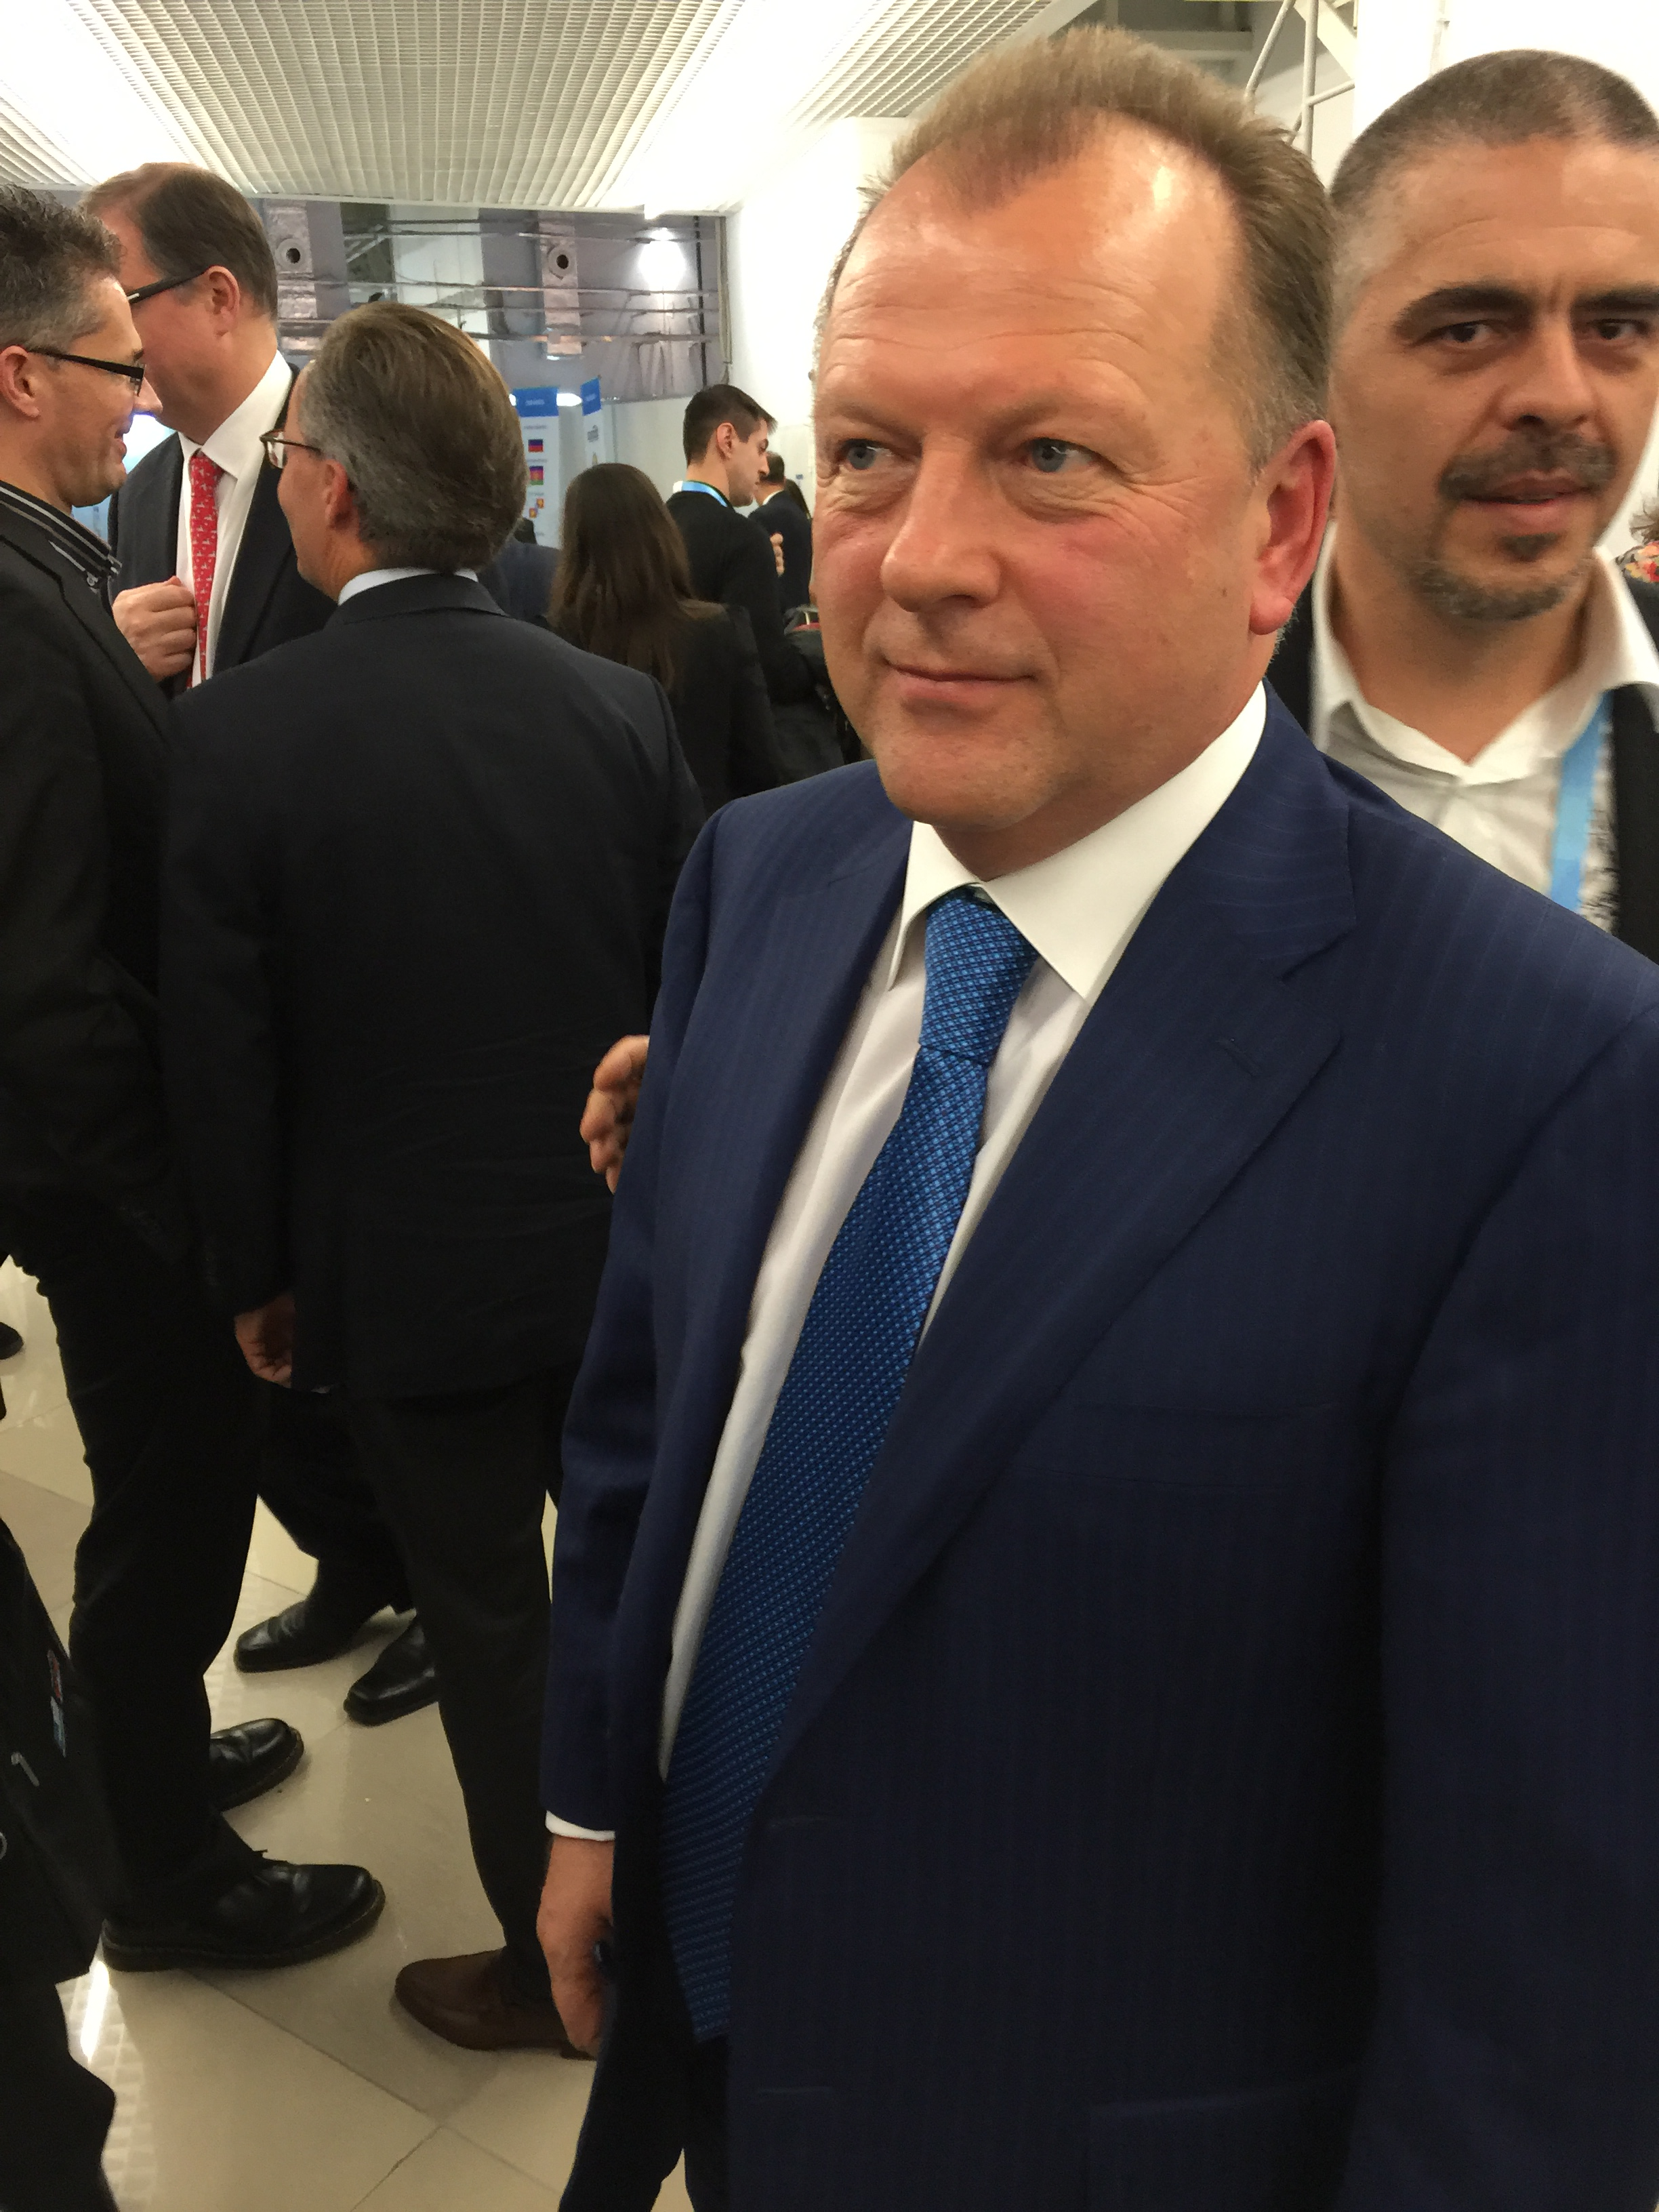 SportAccord president Marius Vizer moments after Thursday's news conference